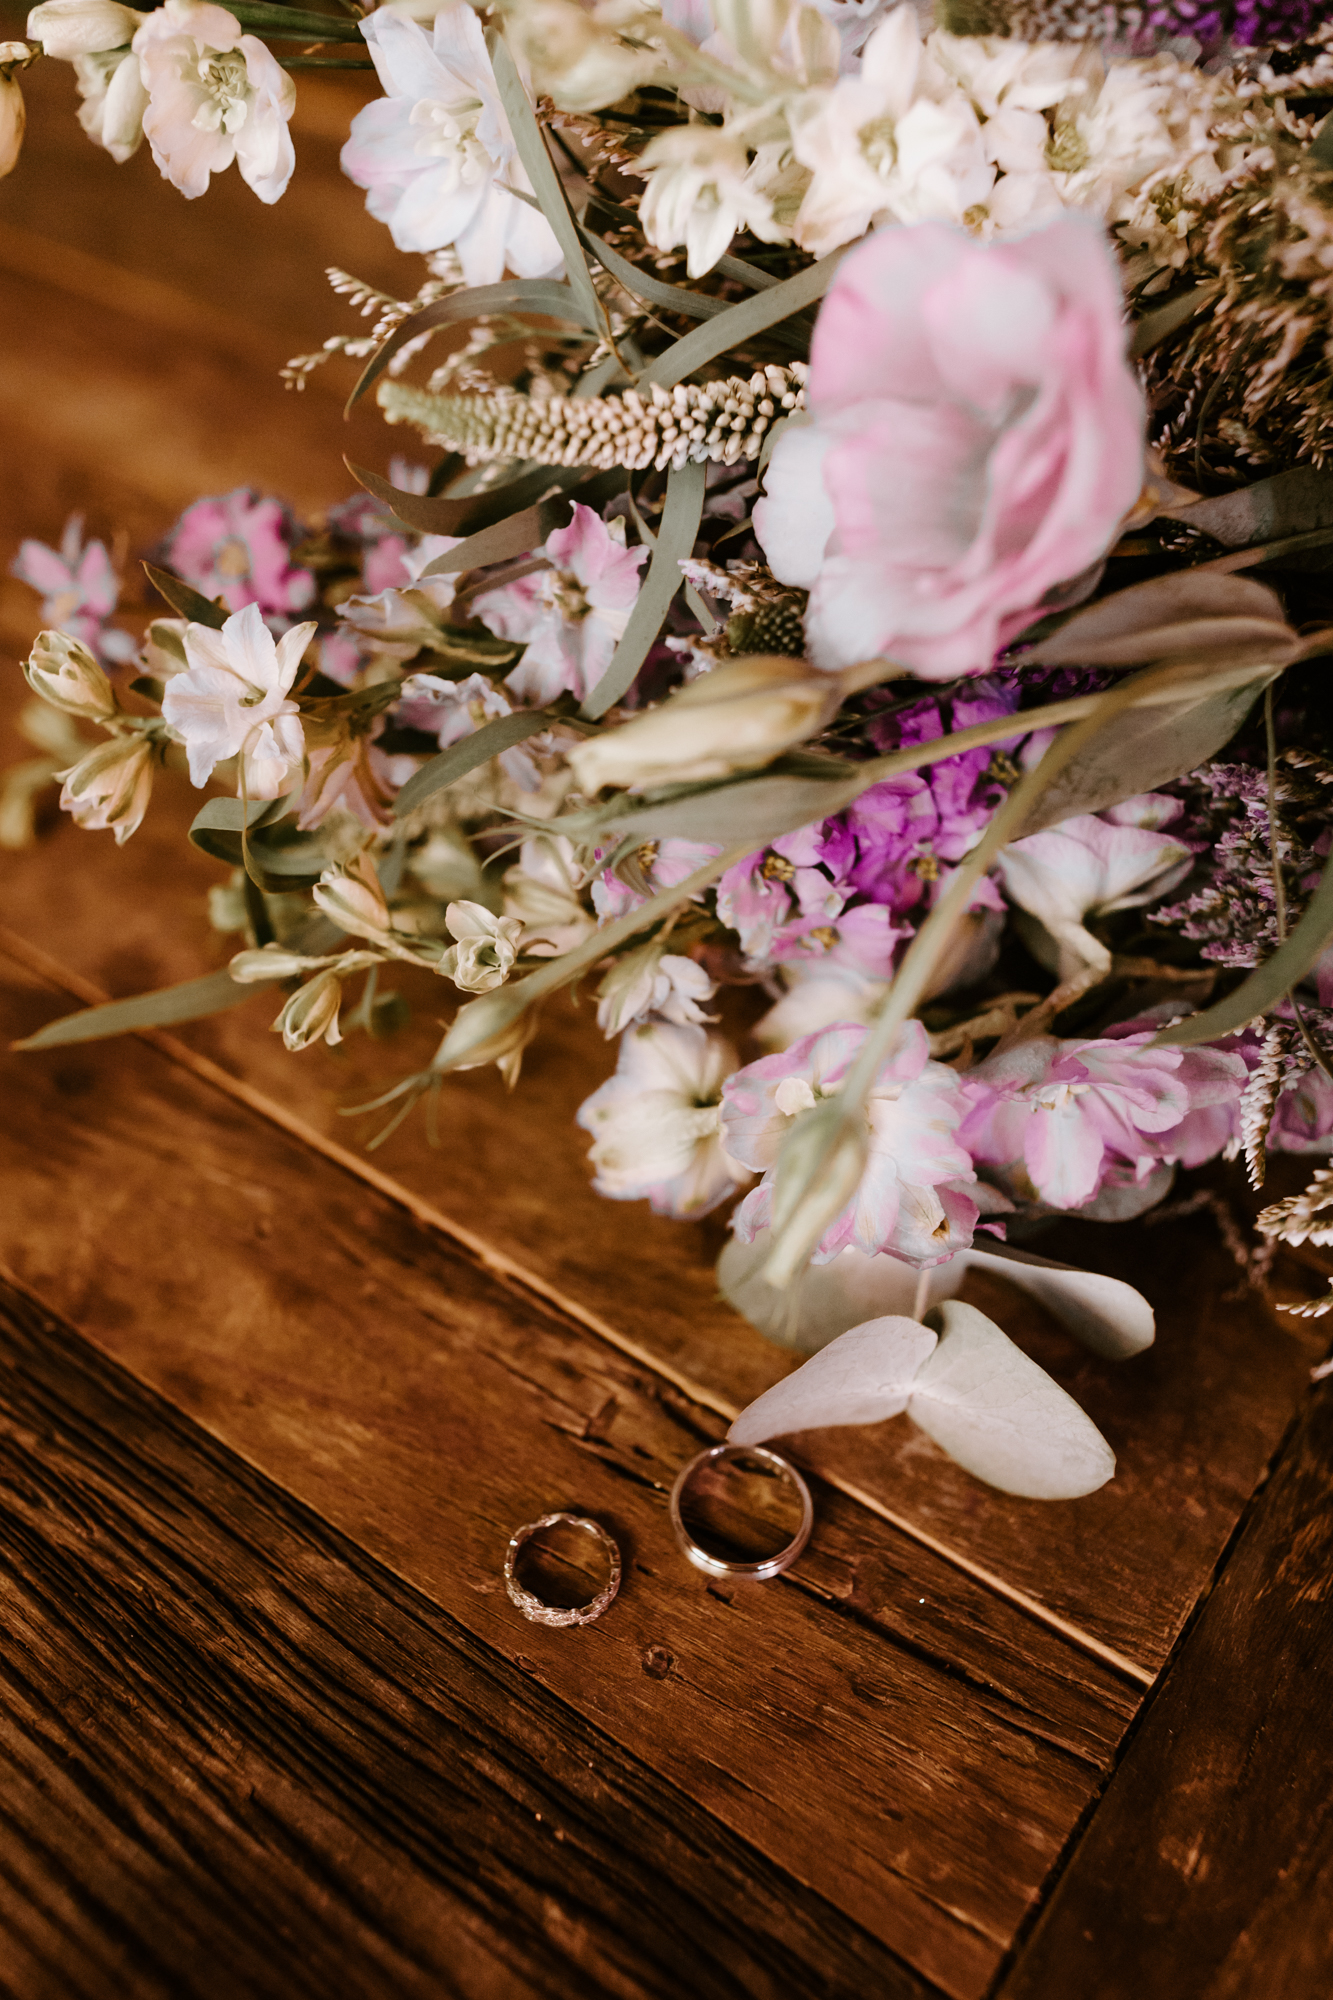 Rustic wildflower bouquet details | Carondelet House Wedding in Downtown Los Angeles | Los Angeles Wedding Photographer |Tida Svy Photography | www.tidasvy.com